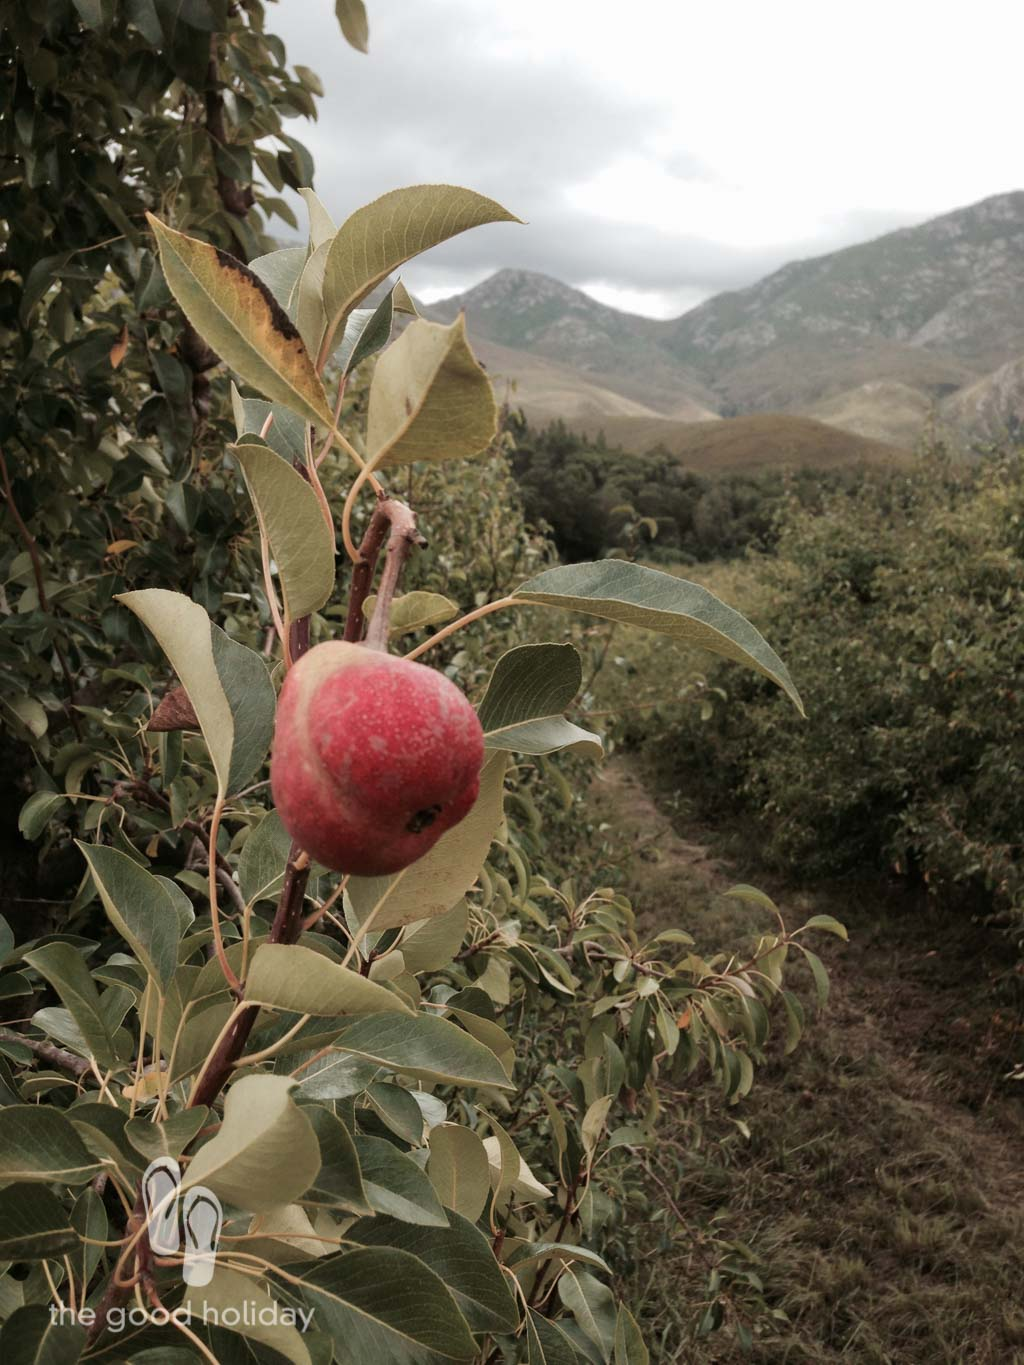 There's magic in the mountains. A pear growing in the orchard.